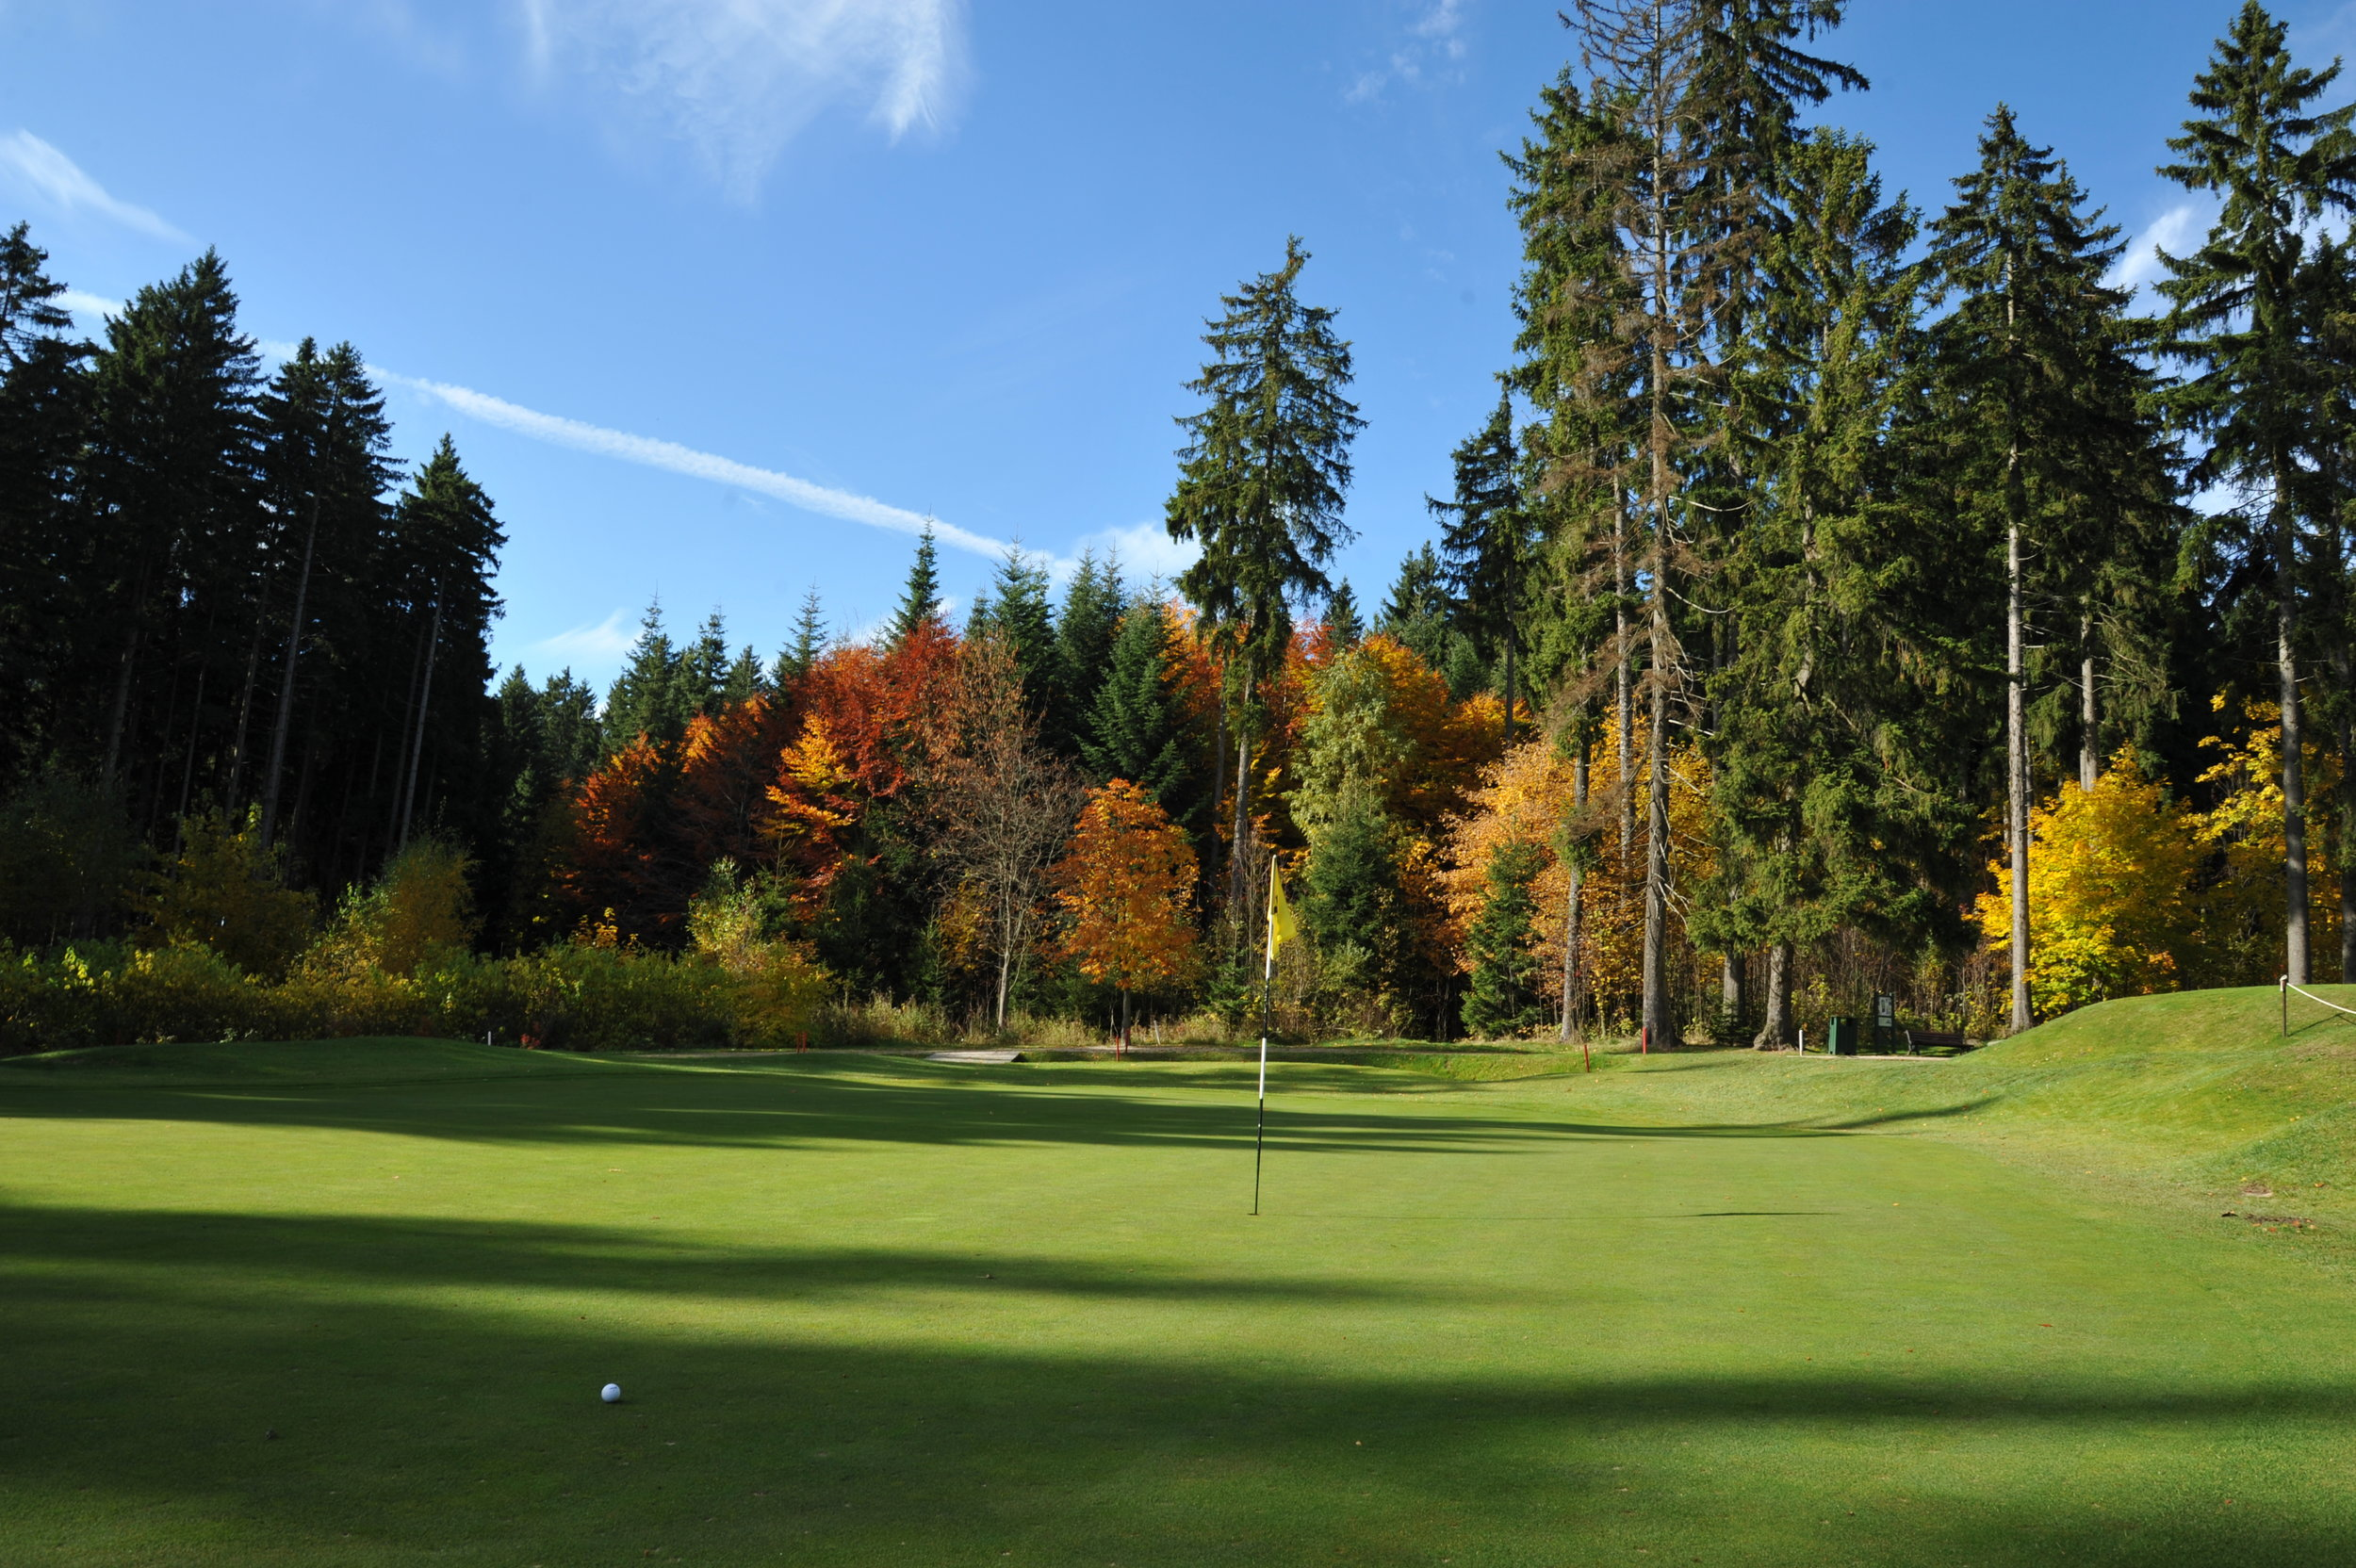 Marienbad or Marianske Lazne is one of the oldest courses in the country